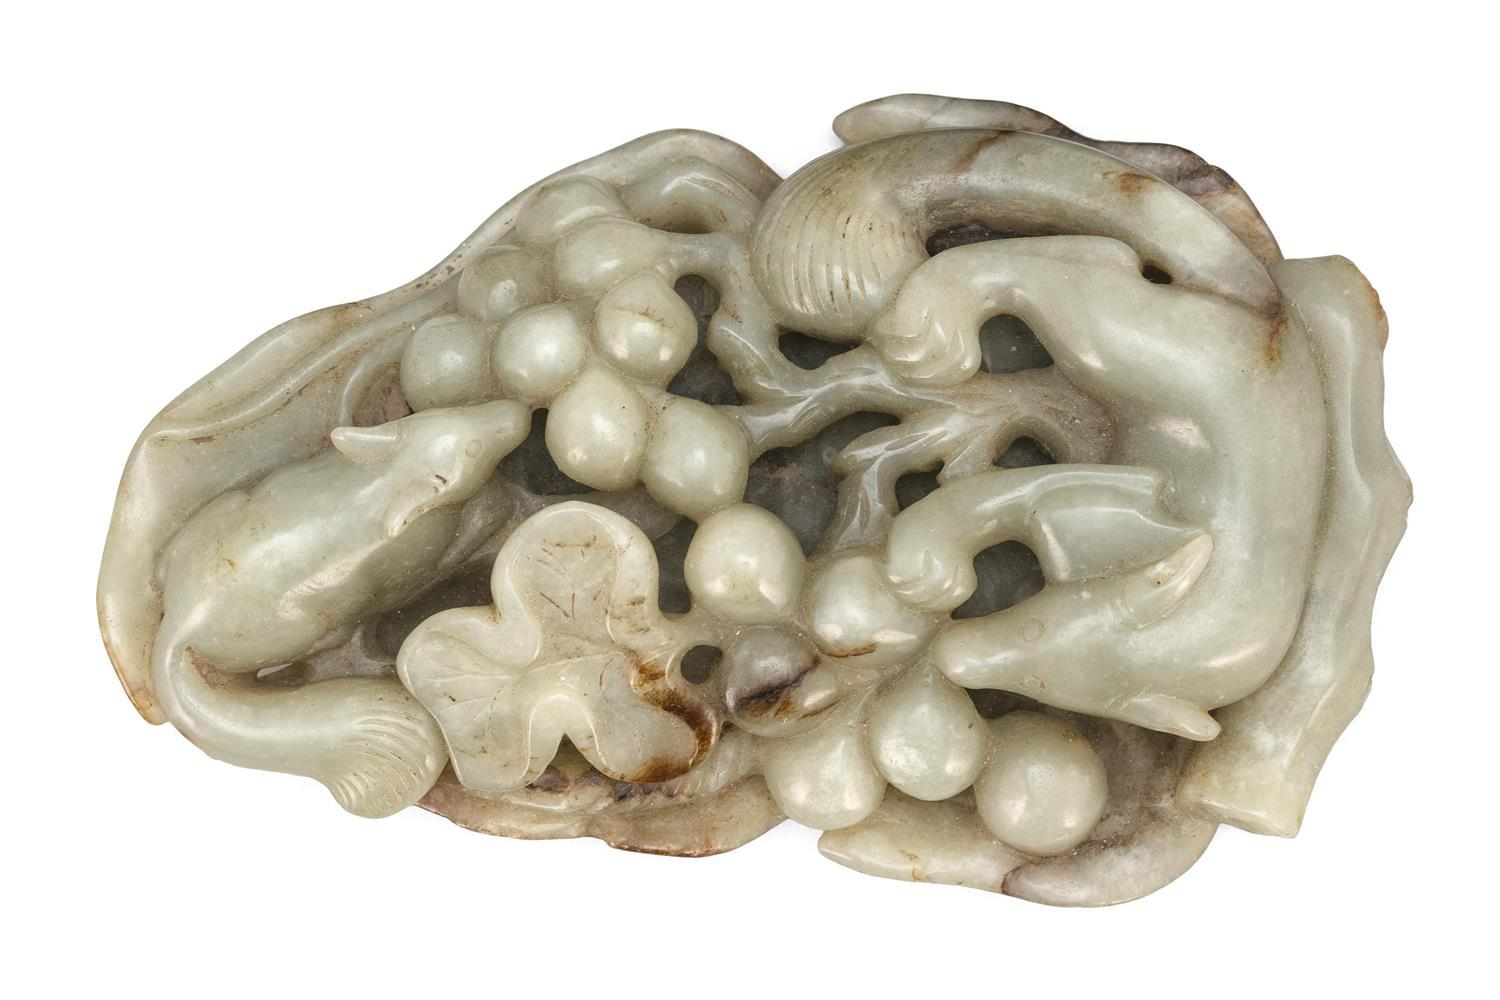 GRAY AND RUSSET JADE SCROLL WEIGHT In the form of two squirrels and clusters of grapes within an openwork leaf, embodying the theme...